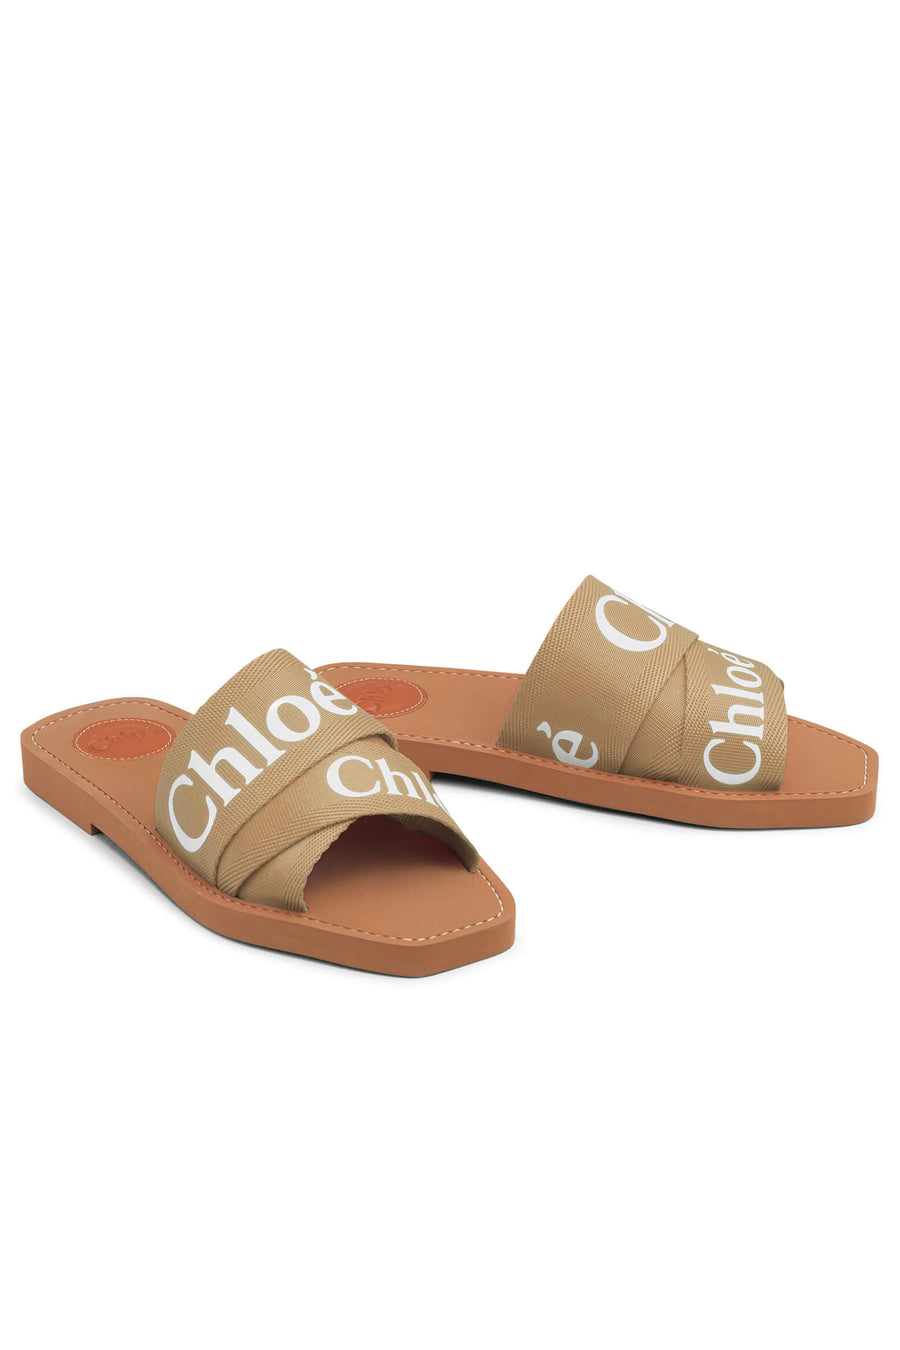 Chloe Woody Slide in Soft Tan from The New Trend